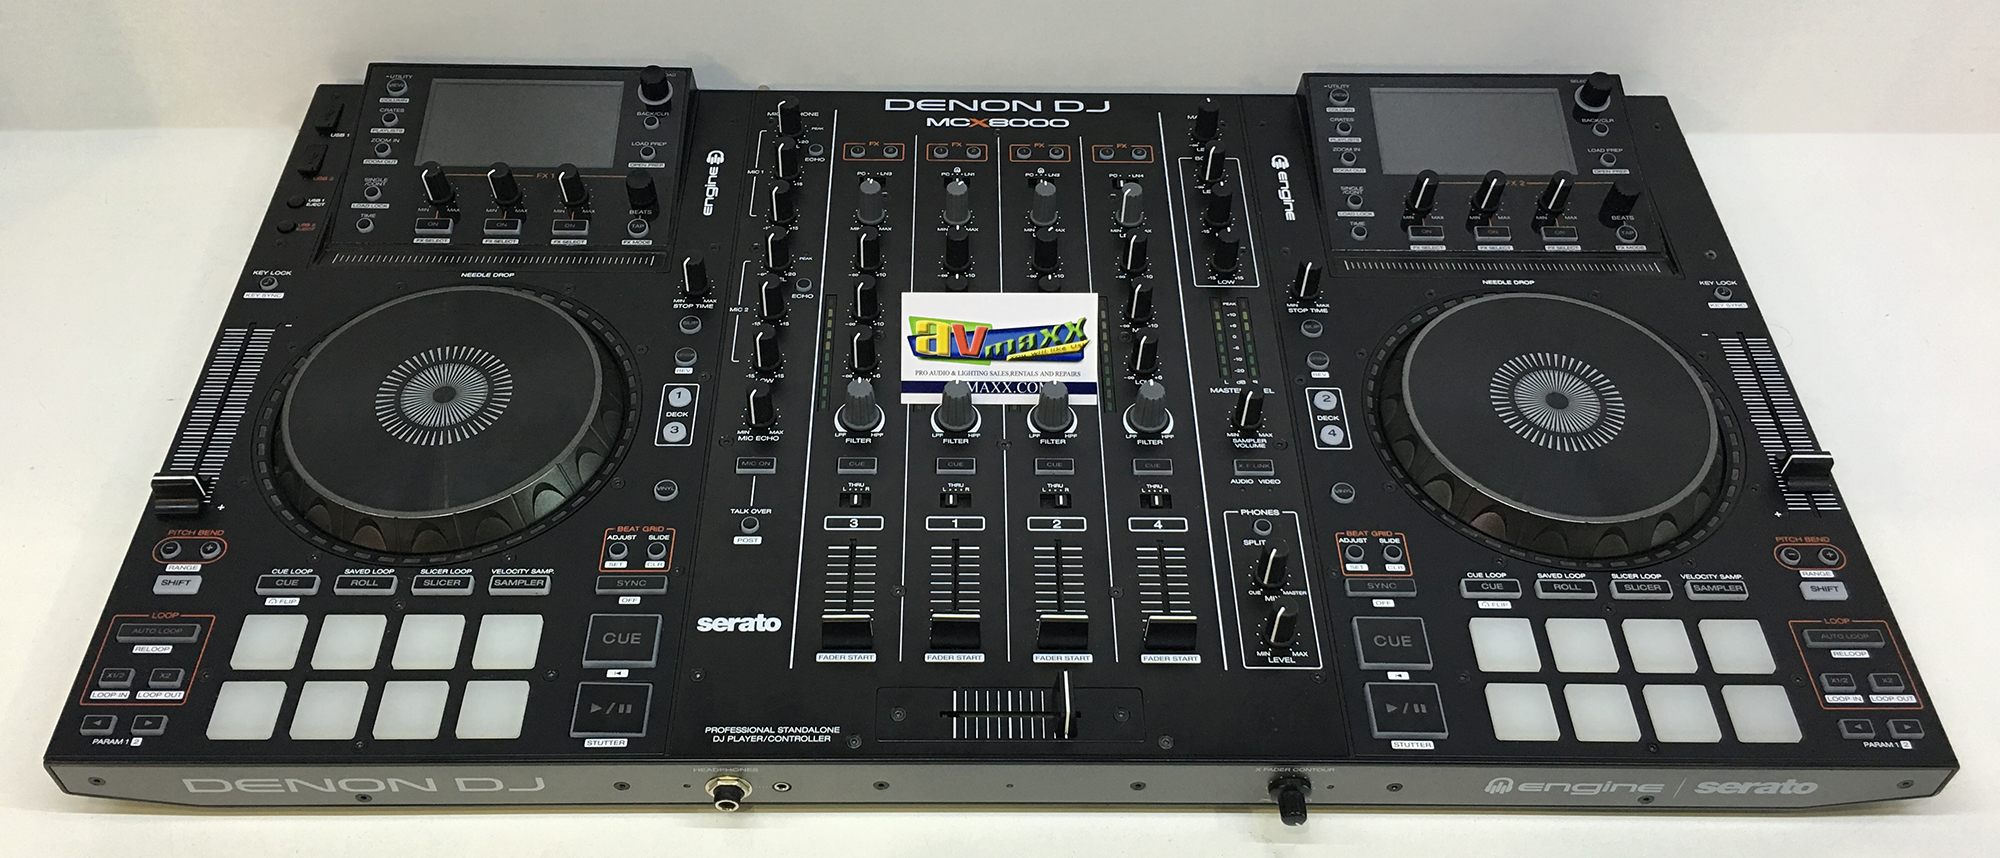 Denon DJ MCX8000 Used Serato DJ Controller Mint Condition